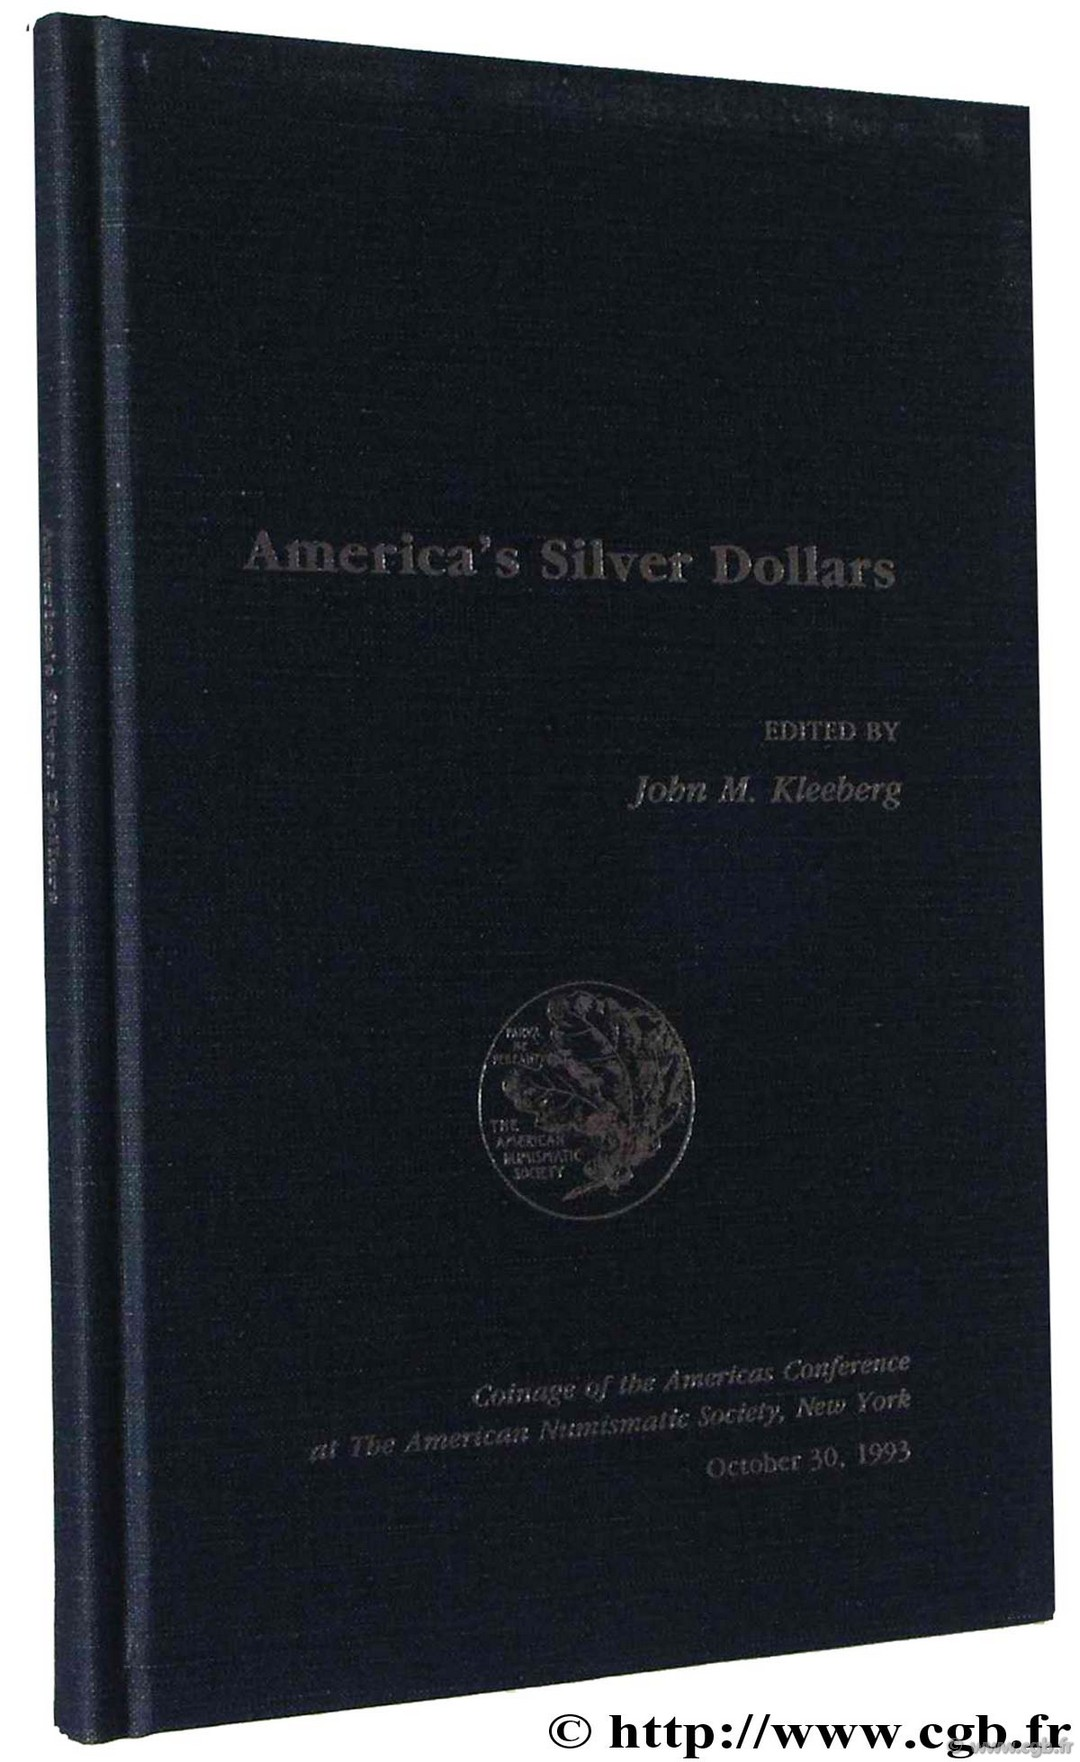 America s silver dollars - coinage of the americas conférence at the American Numismatic Society, New York October 30, 1993